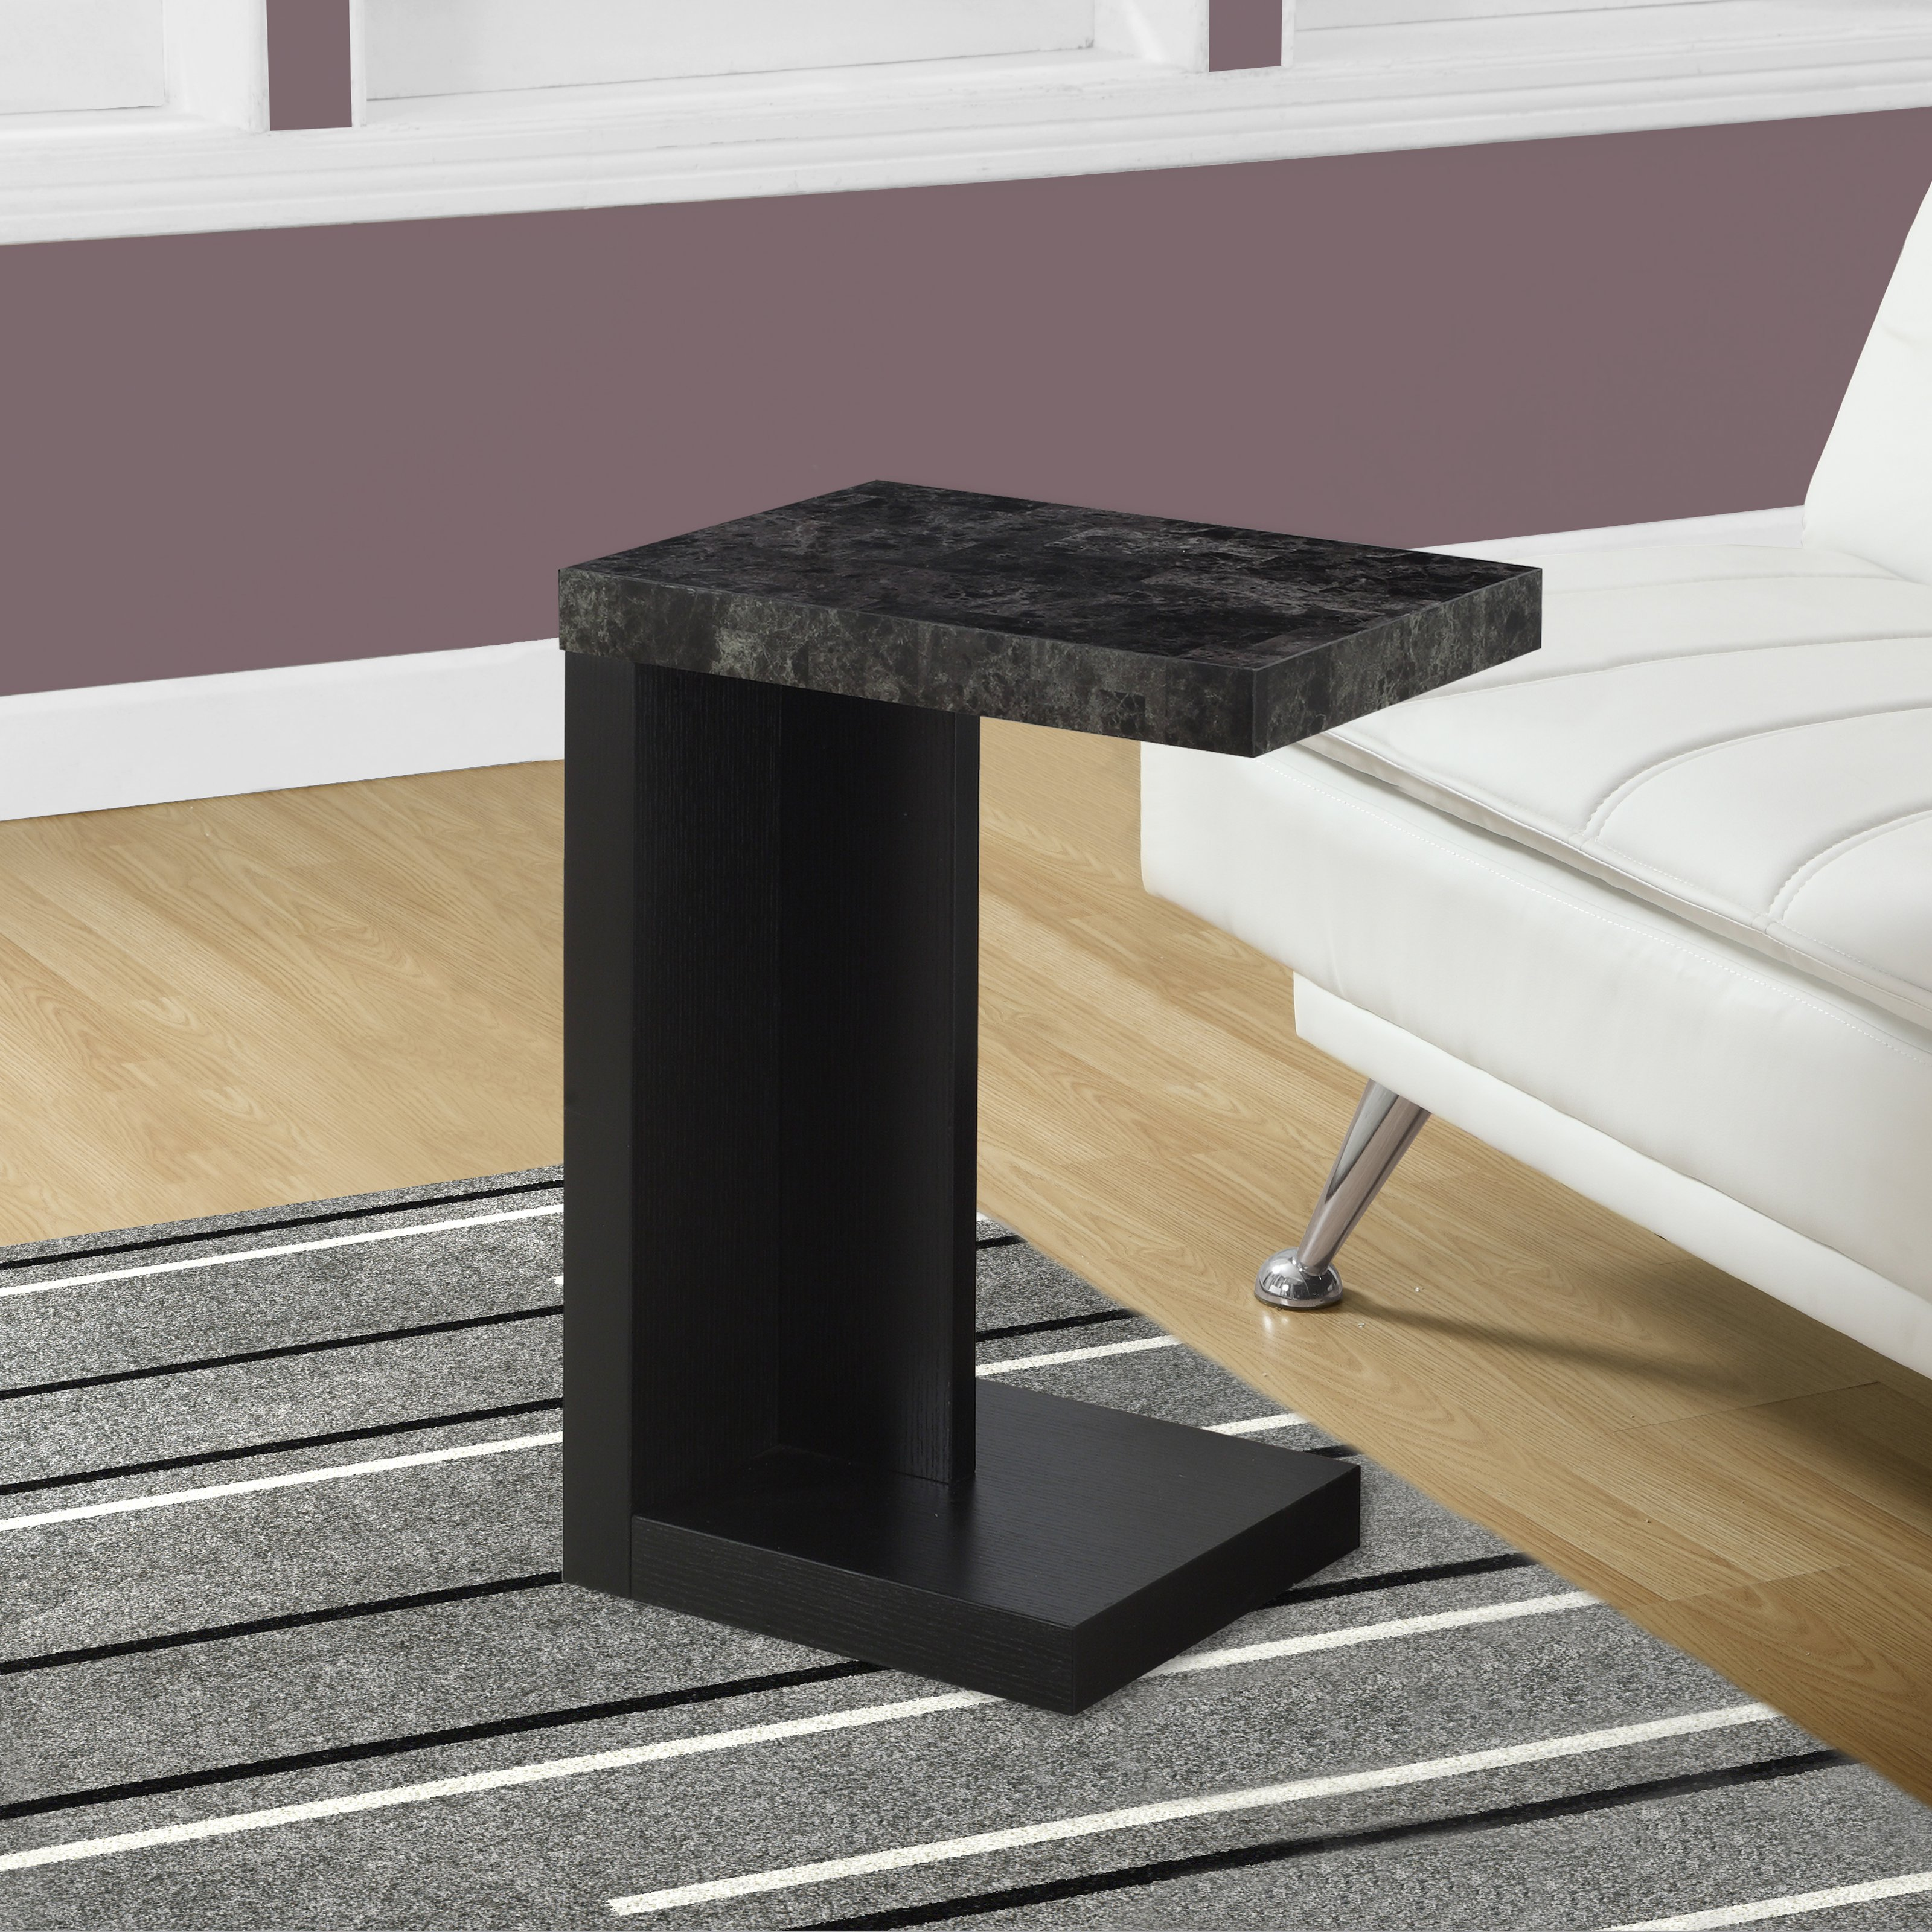 Monarch Accent Table Black / Grey MarbleLook Top